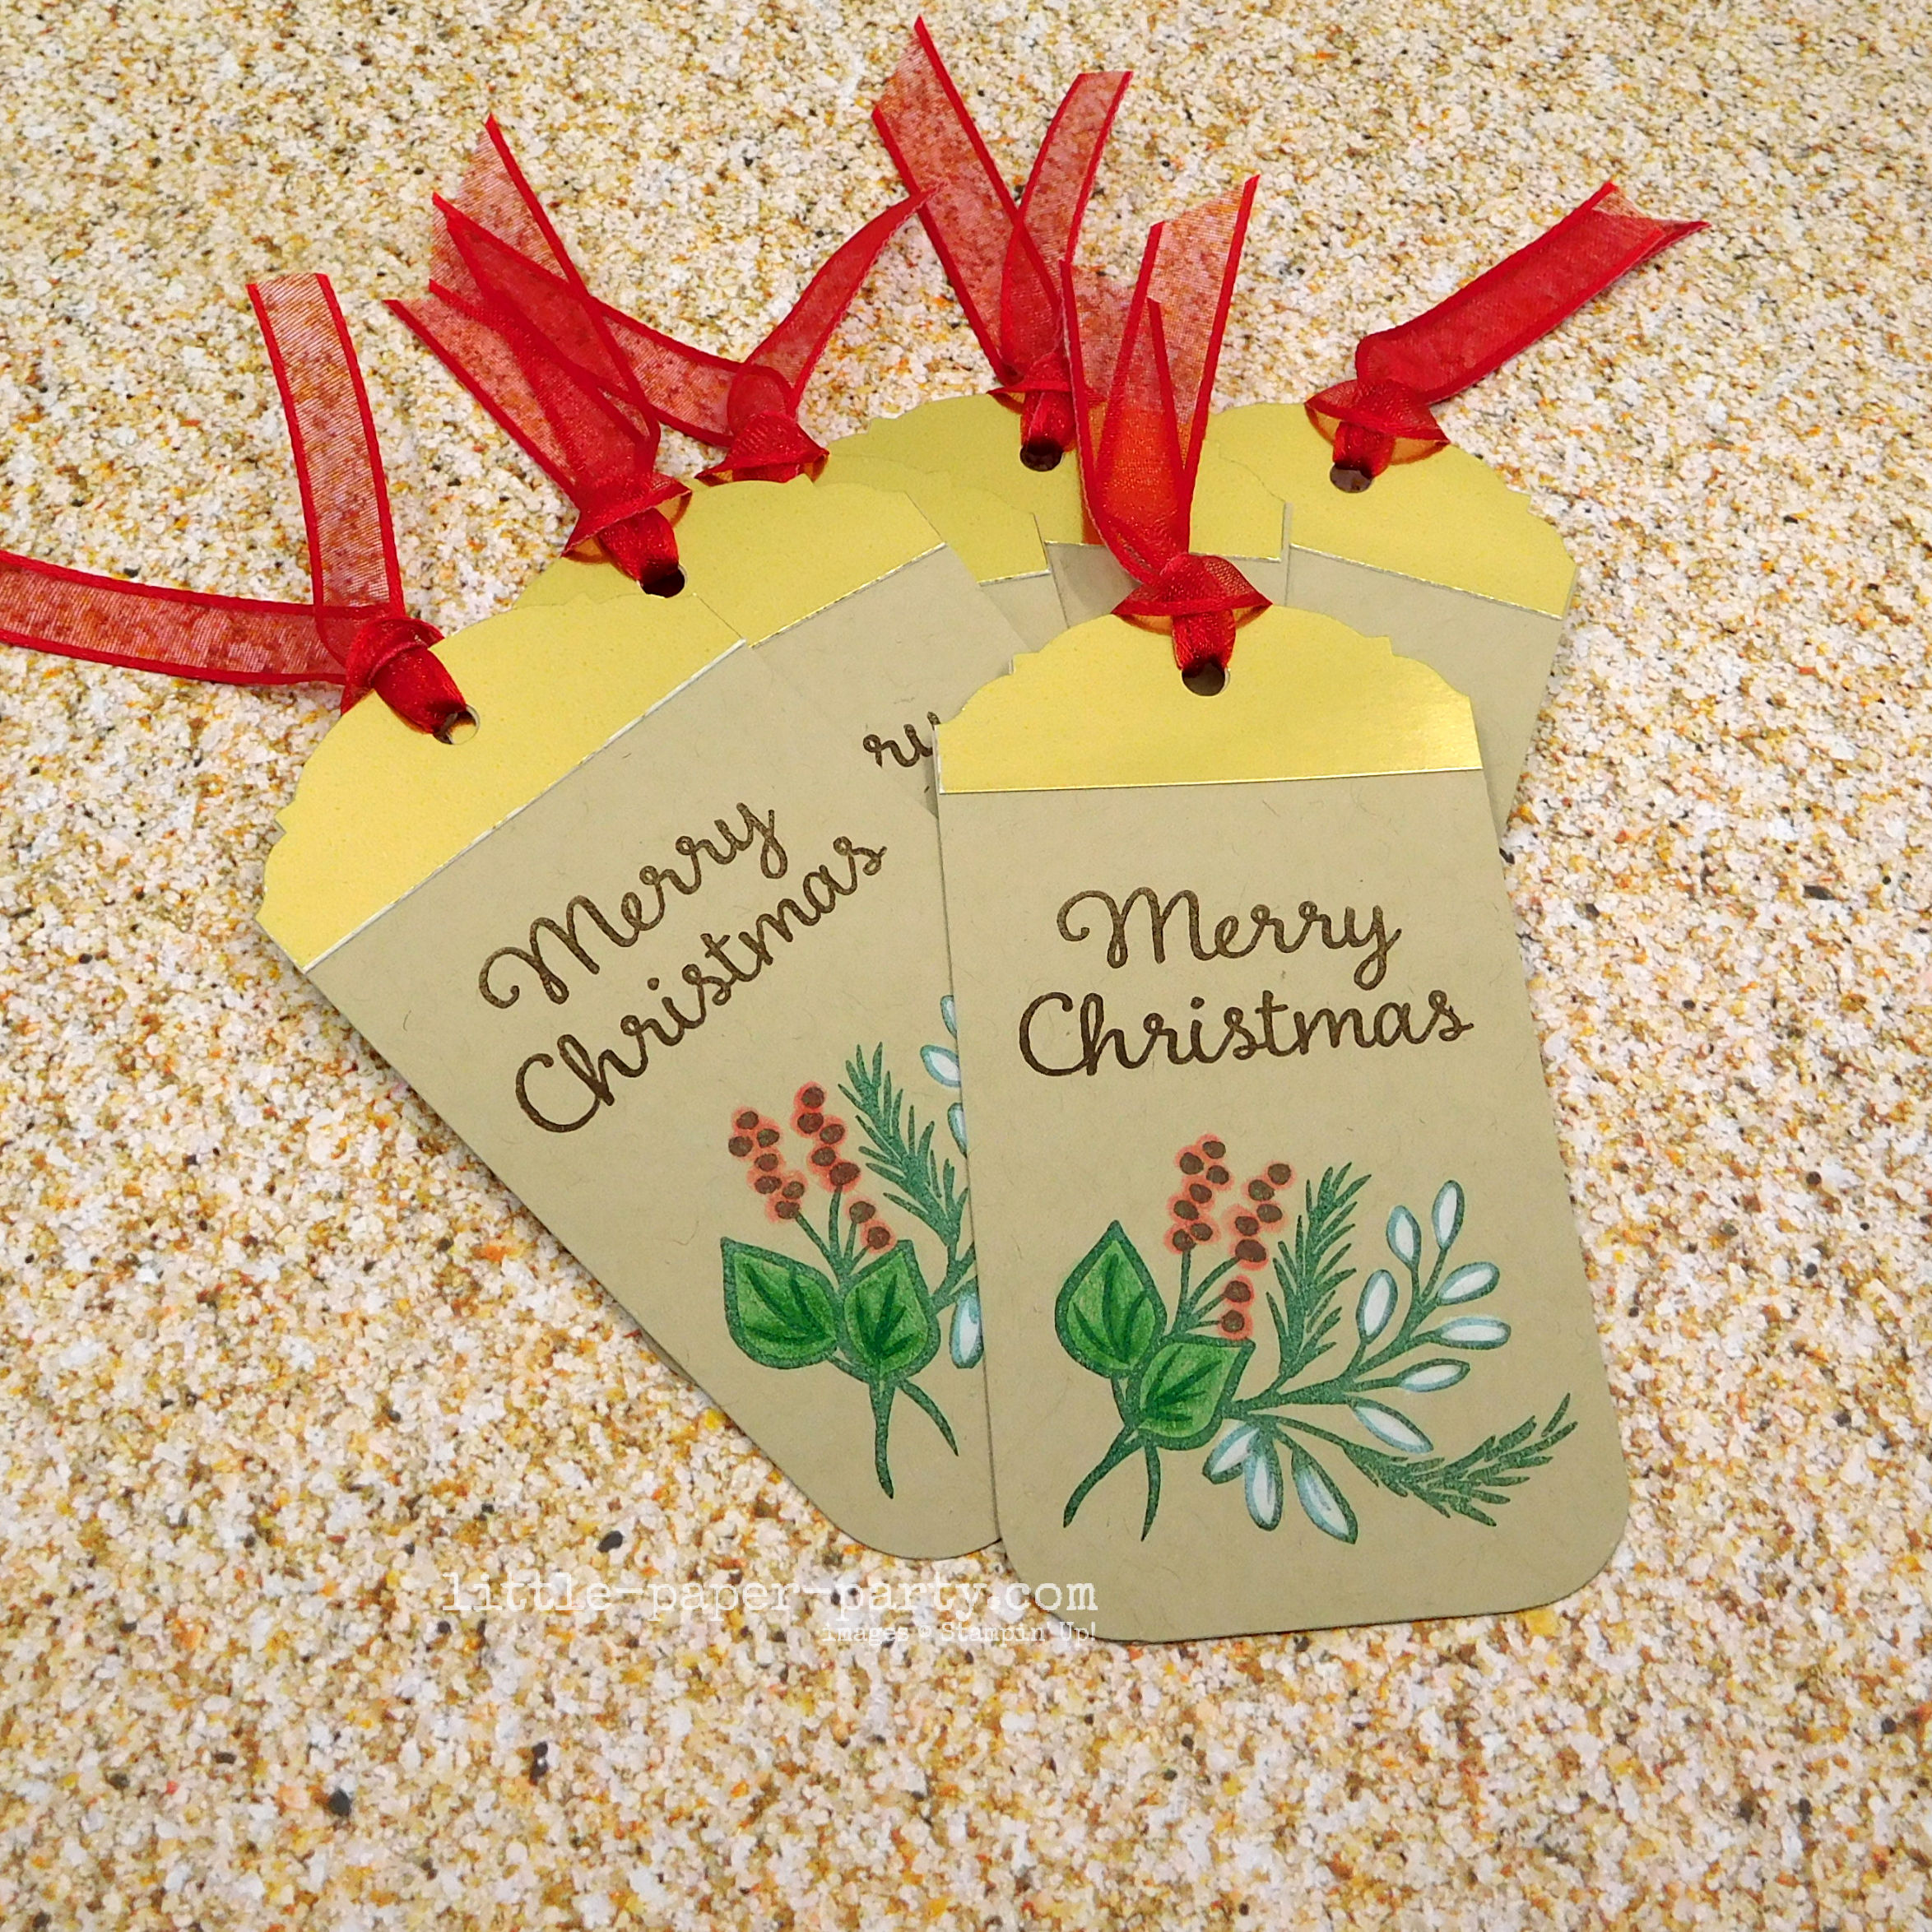 Little Paper Party, 12 Days of Christmas 2020 - Tags, Tags, Tags, 2